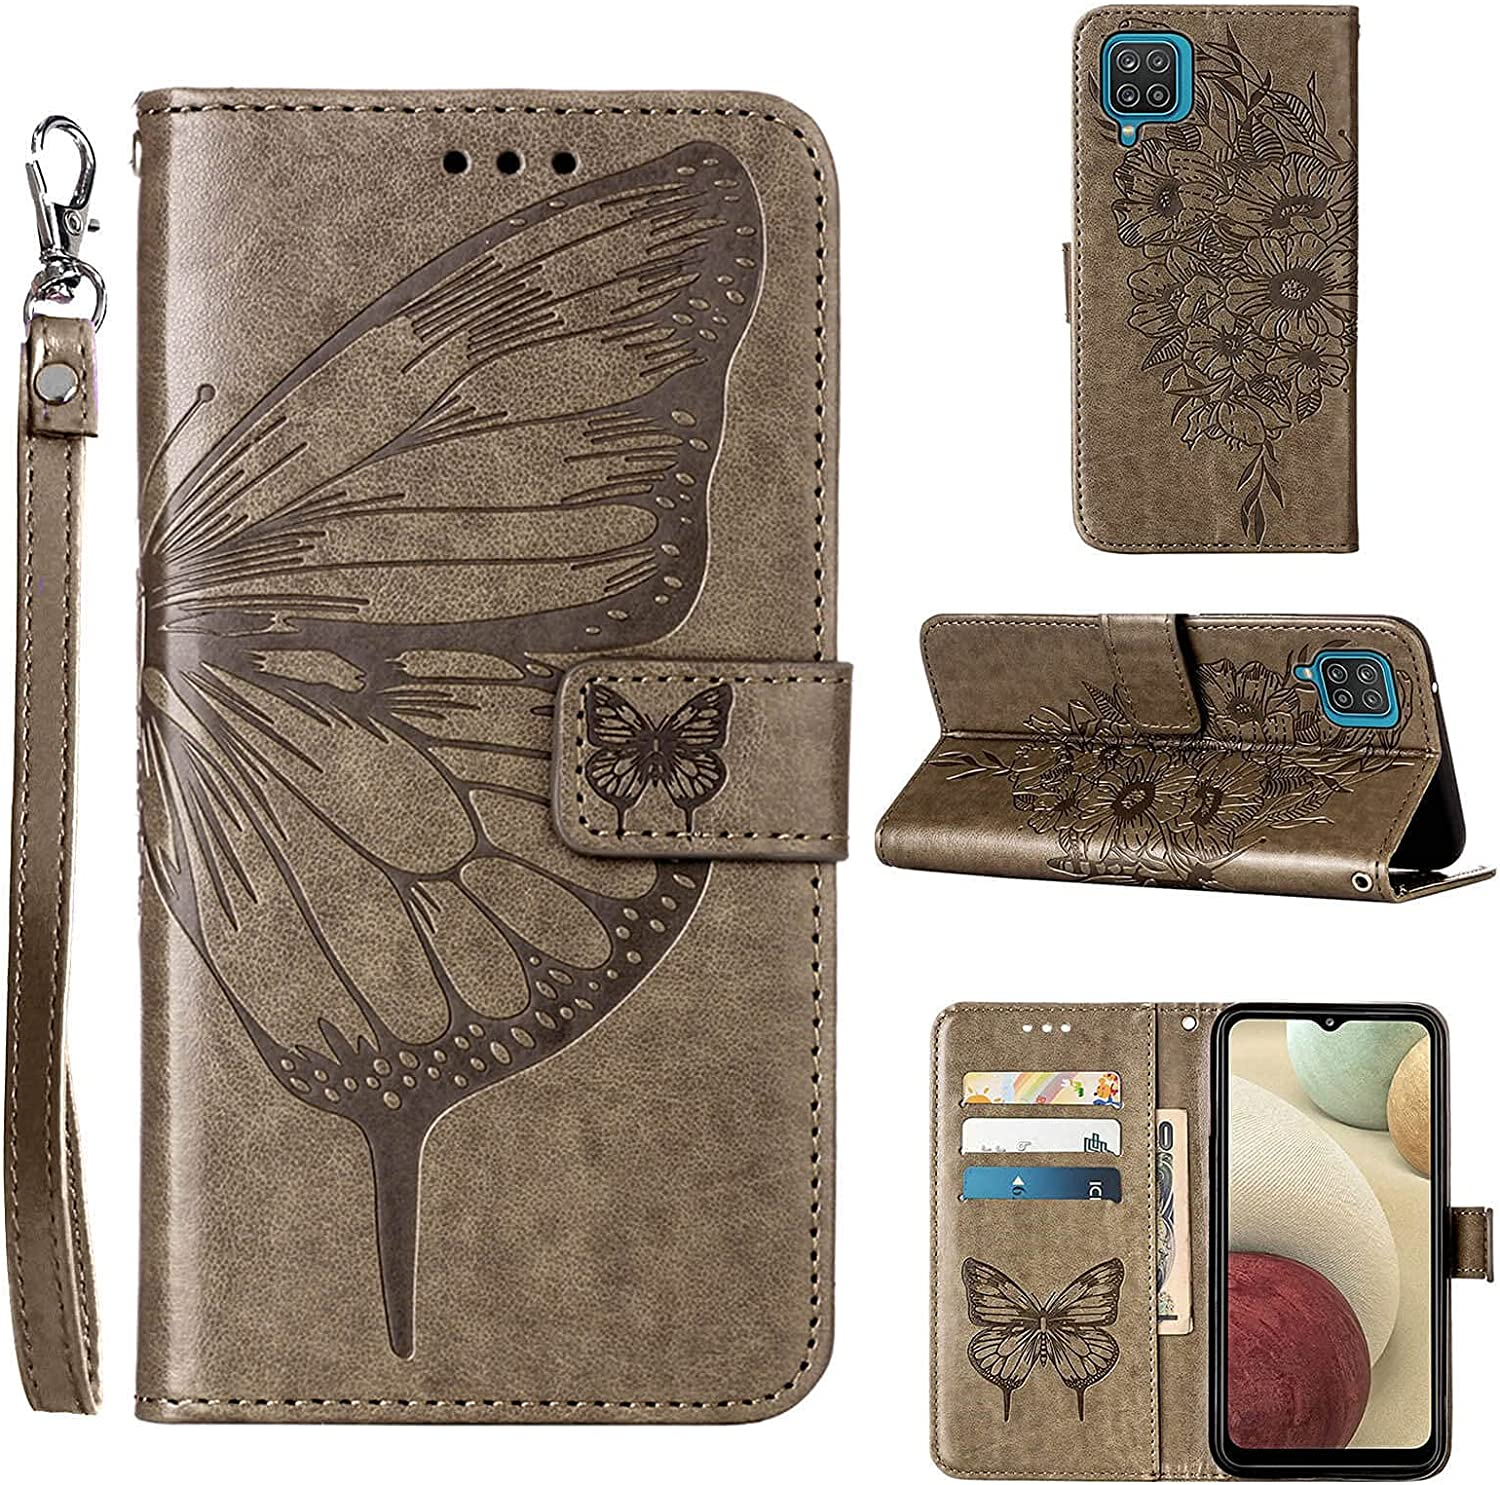 A12 Phone Case Wallet,for Galaxy A12 Case,[Kickstand][Wrist Strap][Card Holder Slots] Butterfly Floral Embossed PU Leather Flip Protective Cover for Samsung A12 Case (Gray)